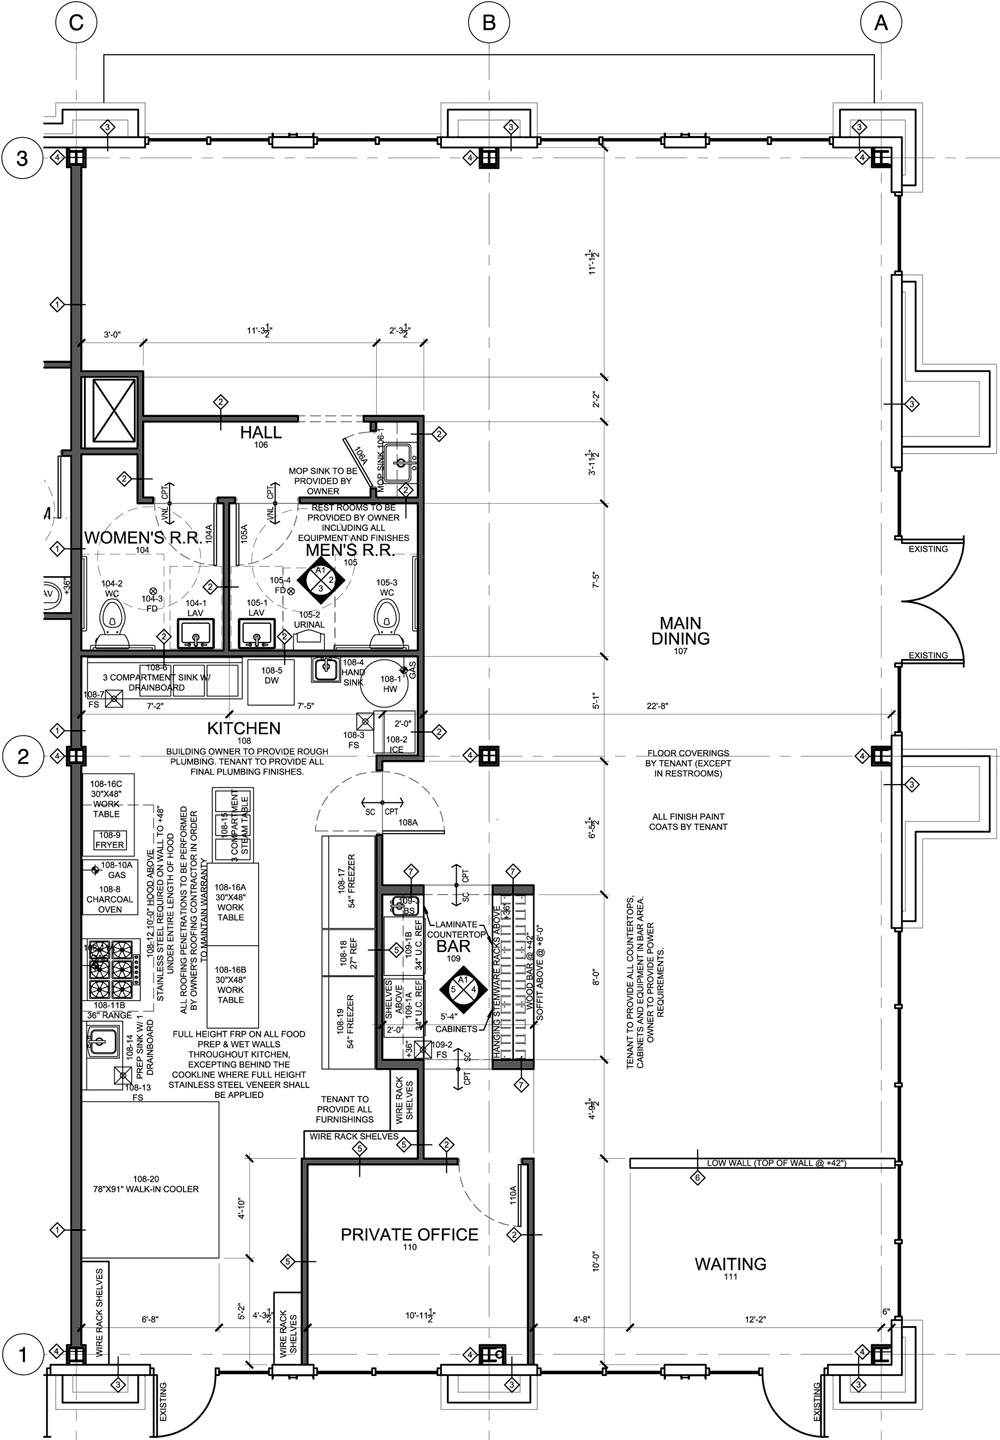 Restaurant floor plan for tenant improvement taste of Rest house plan